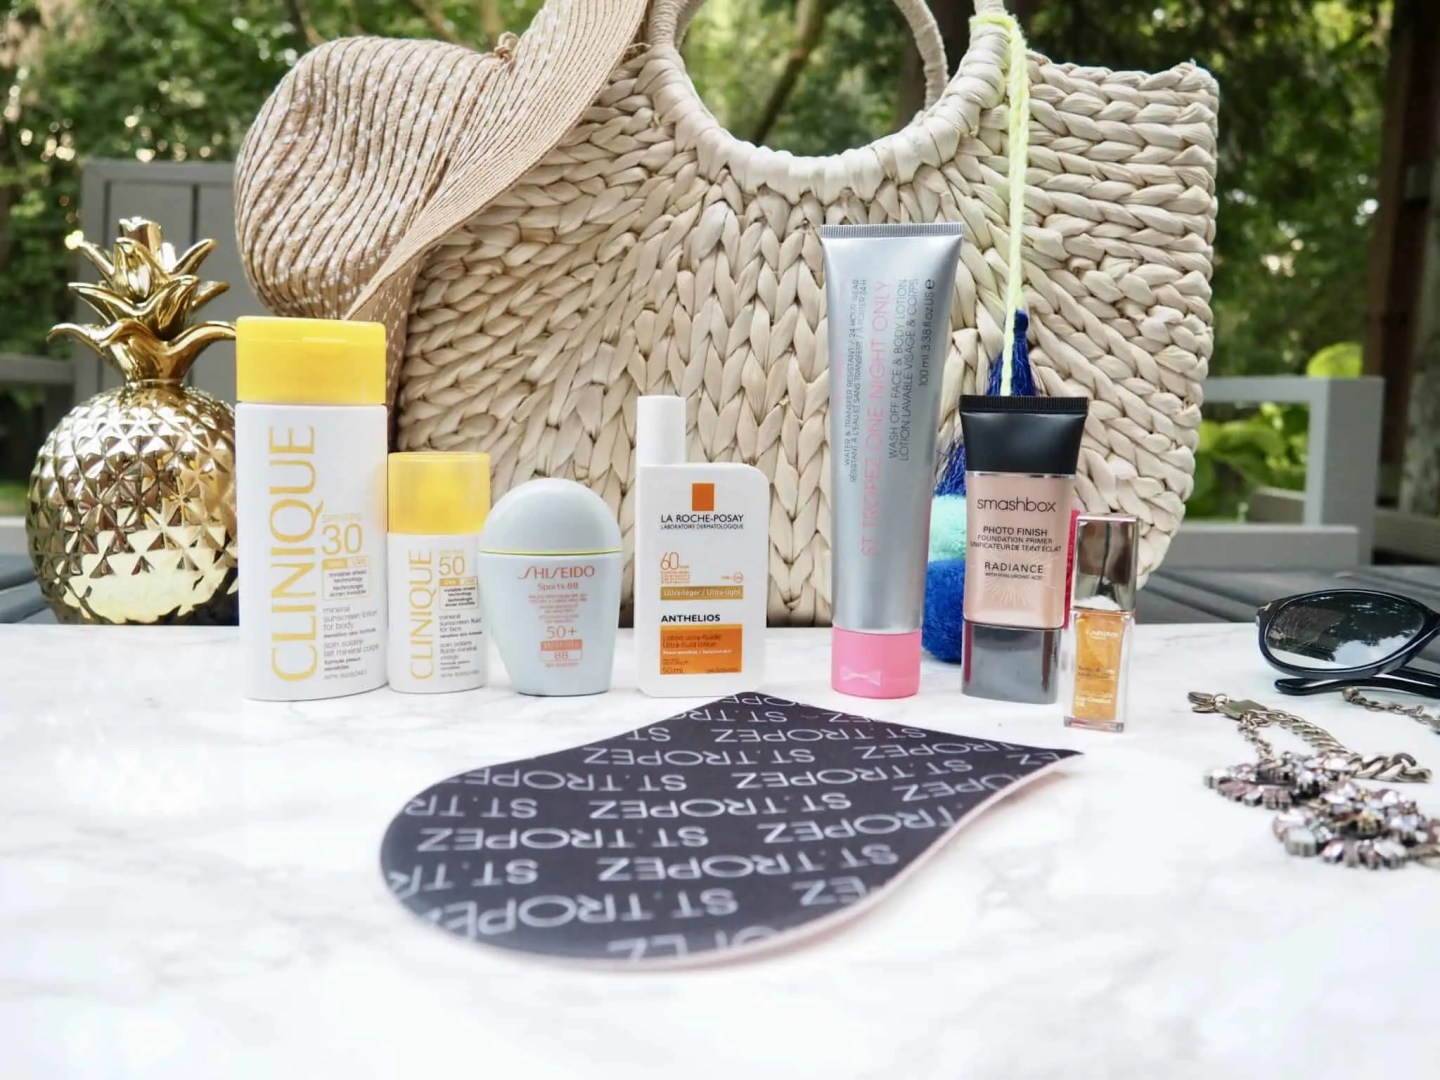 Summer Skincare Essentials With Shoppers Drug Mart